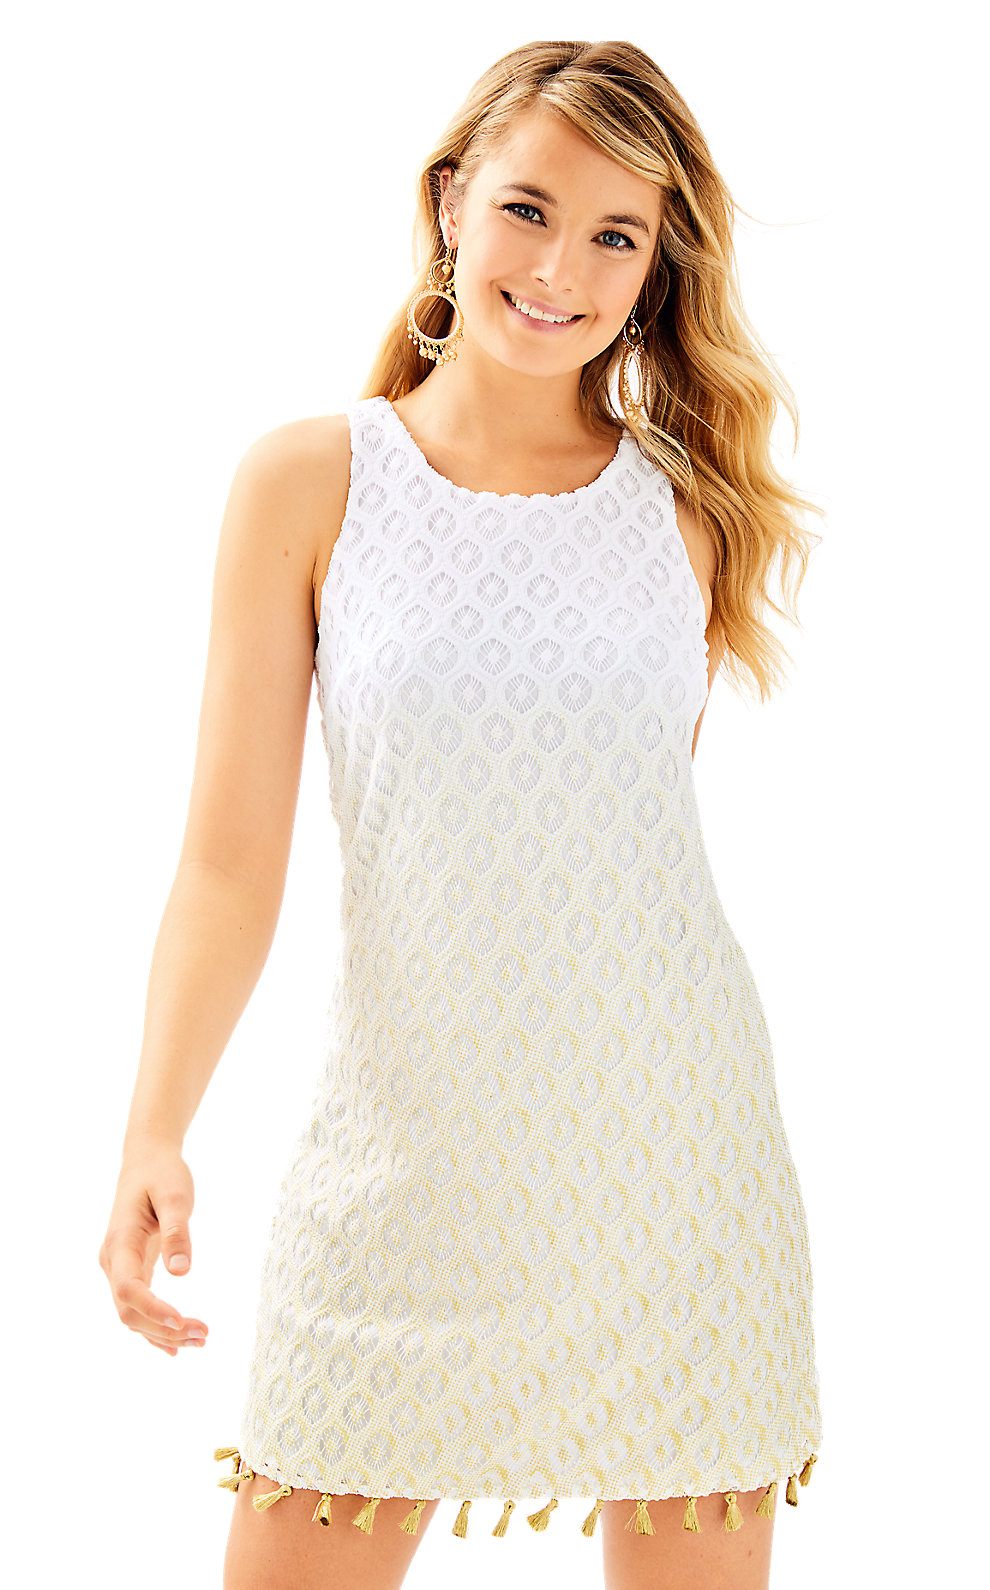 Lilly Pulitzer Lilly Pulitzer Marquette Shift Dress